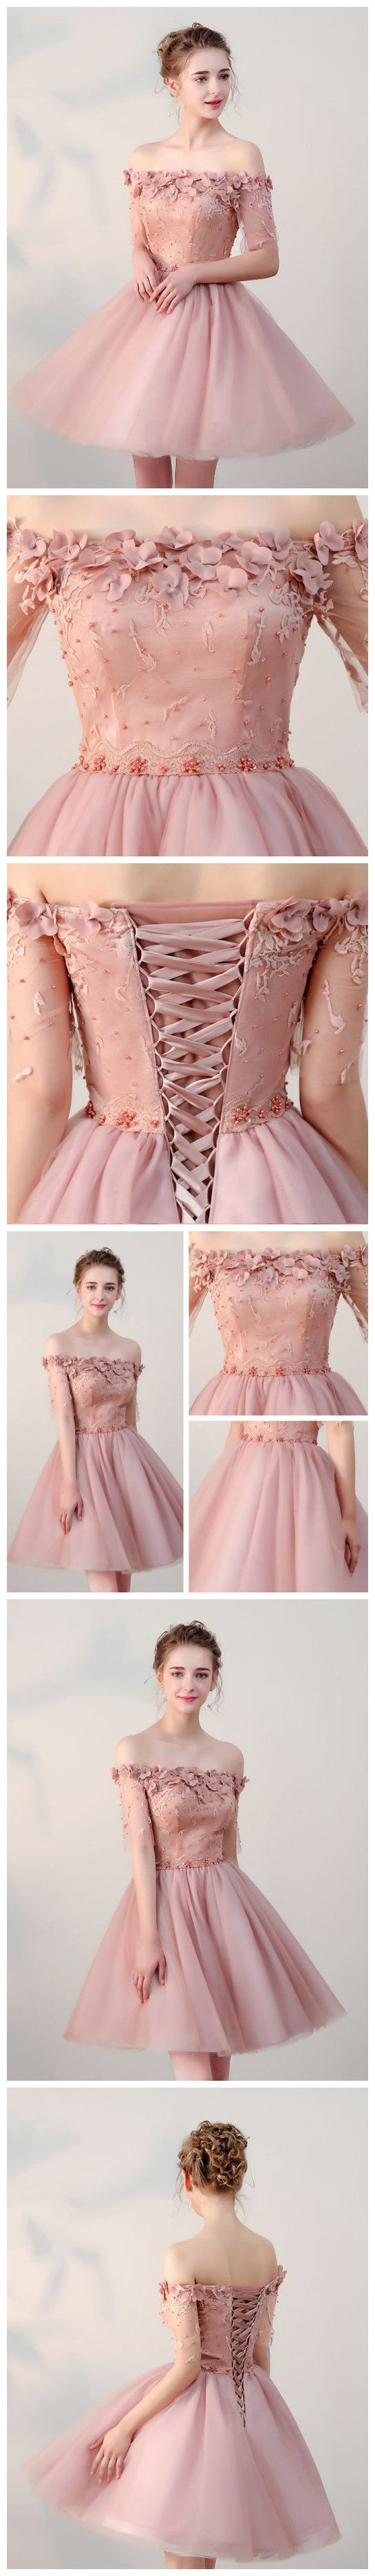 CHIC HOMECOMING DRESSES SHORT PEARL PINK OFF-THE-SHOULDER TULLE CHEAP PROM DRESS AM022- I always wanted one